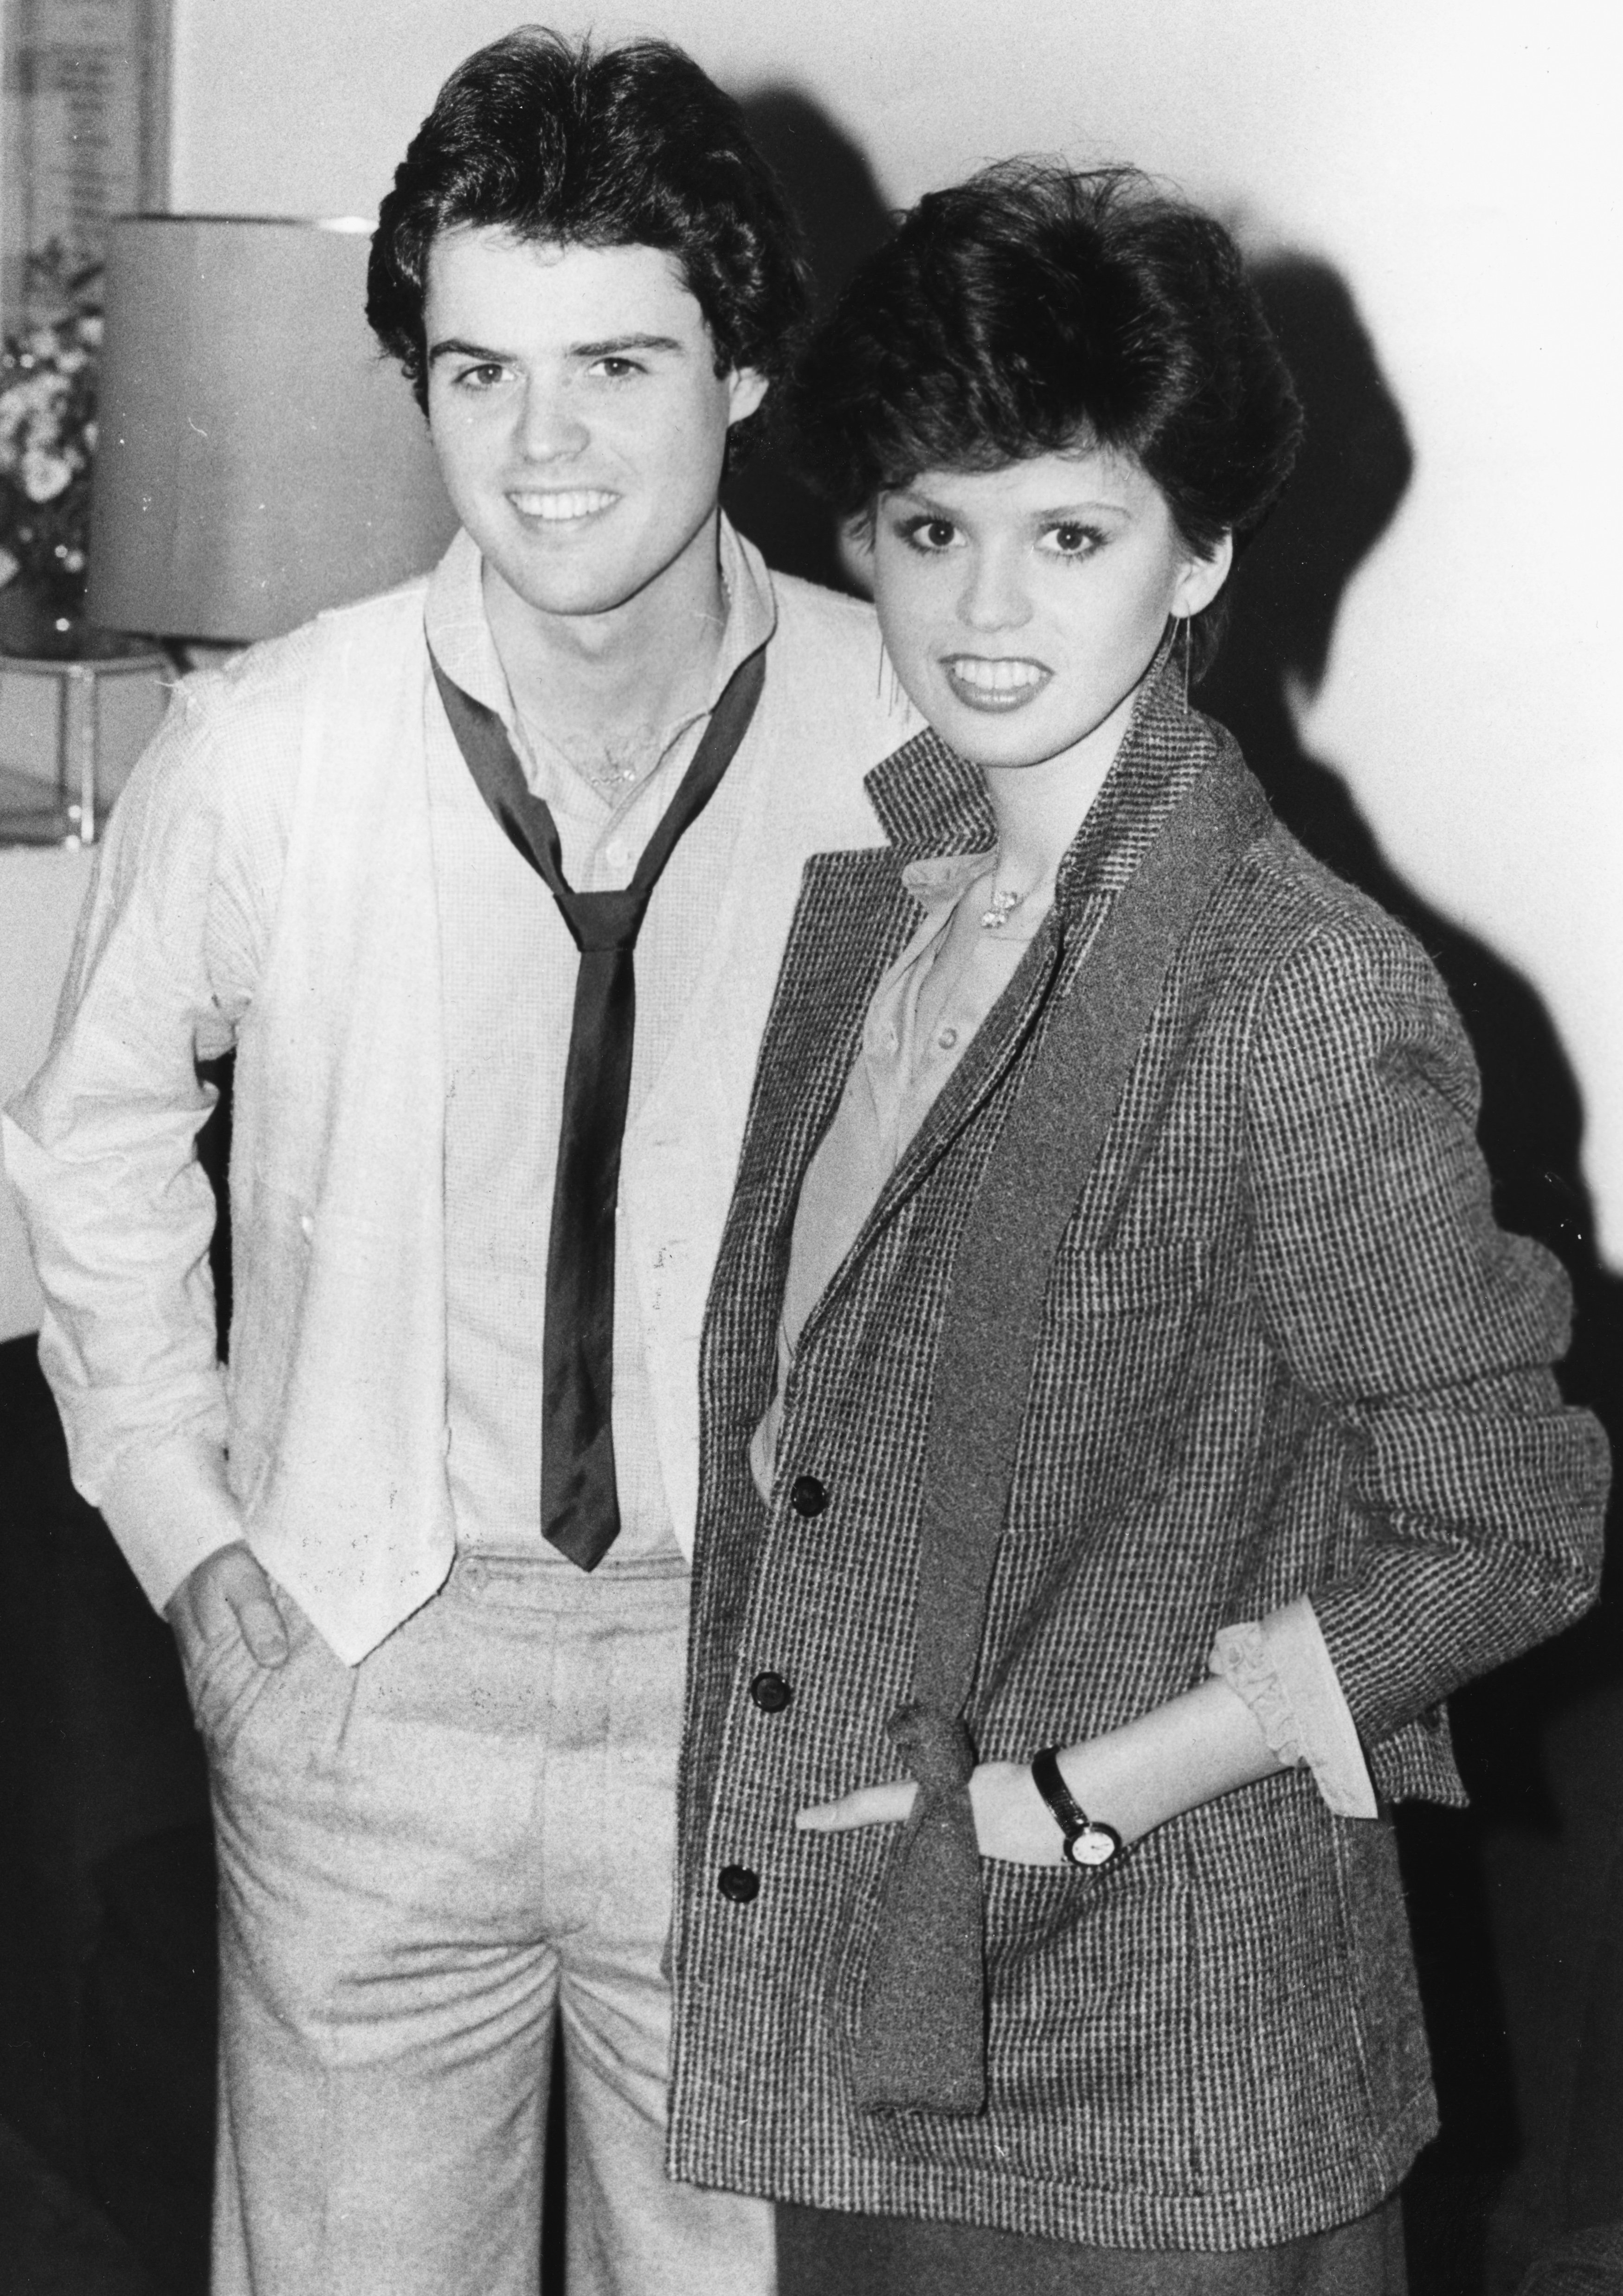 Image Credits: Getty Images / Monti Spry / Central Press | Singers and siblings Donny and Marie Osmond, smiling for the cameras at a press conference, London, January 22nd 1979.